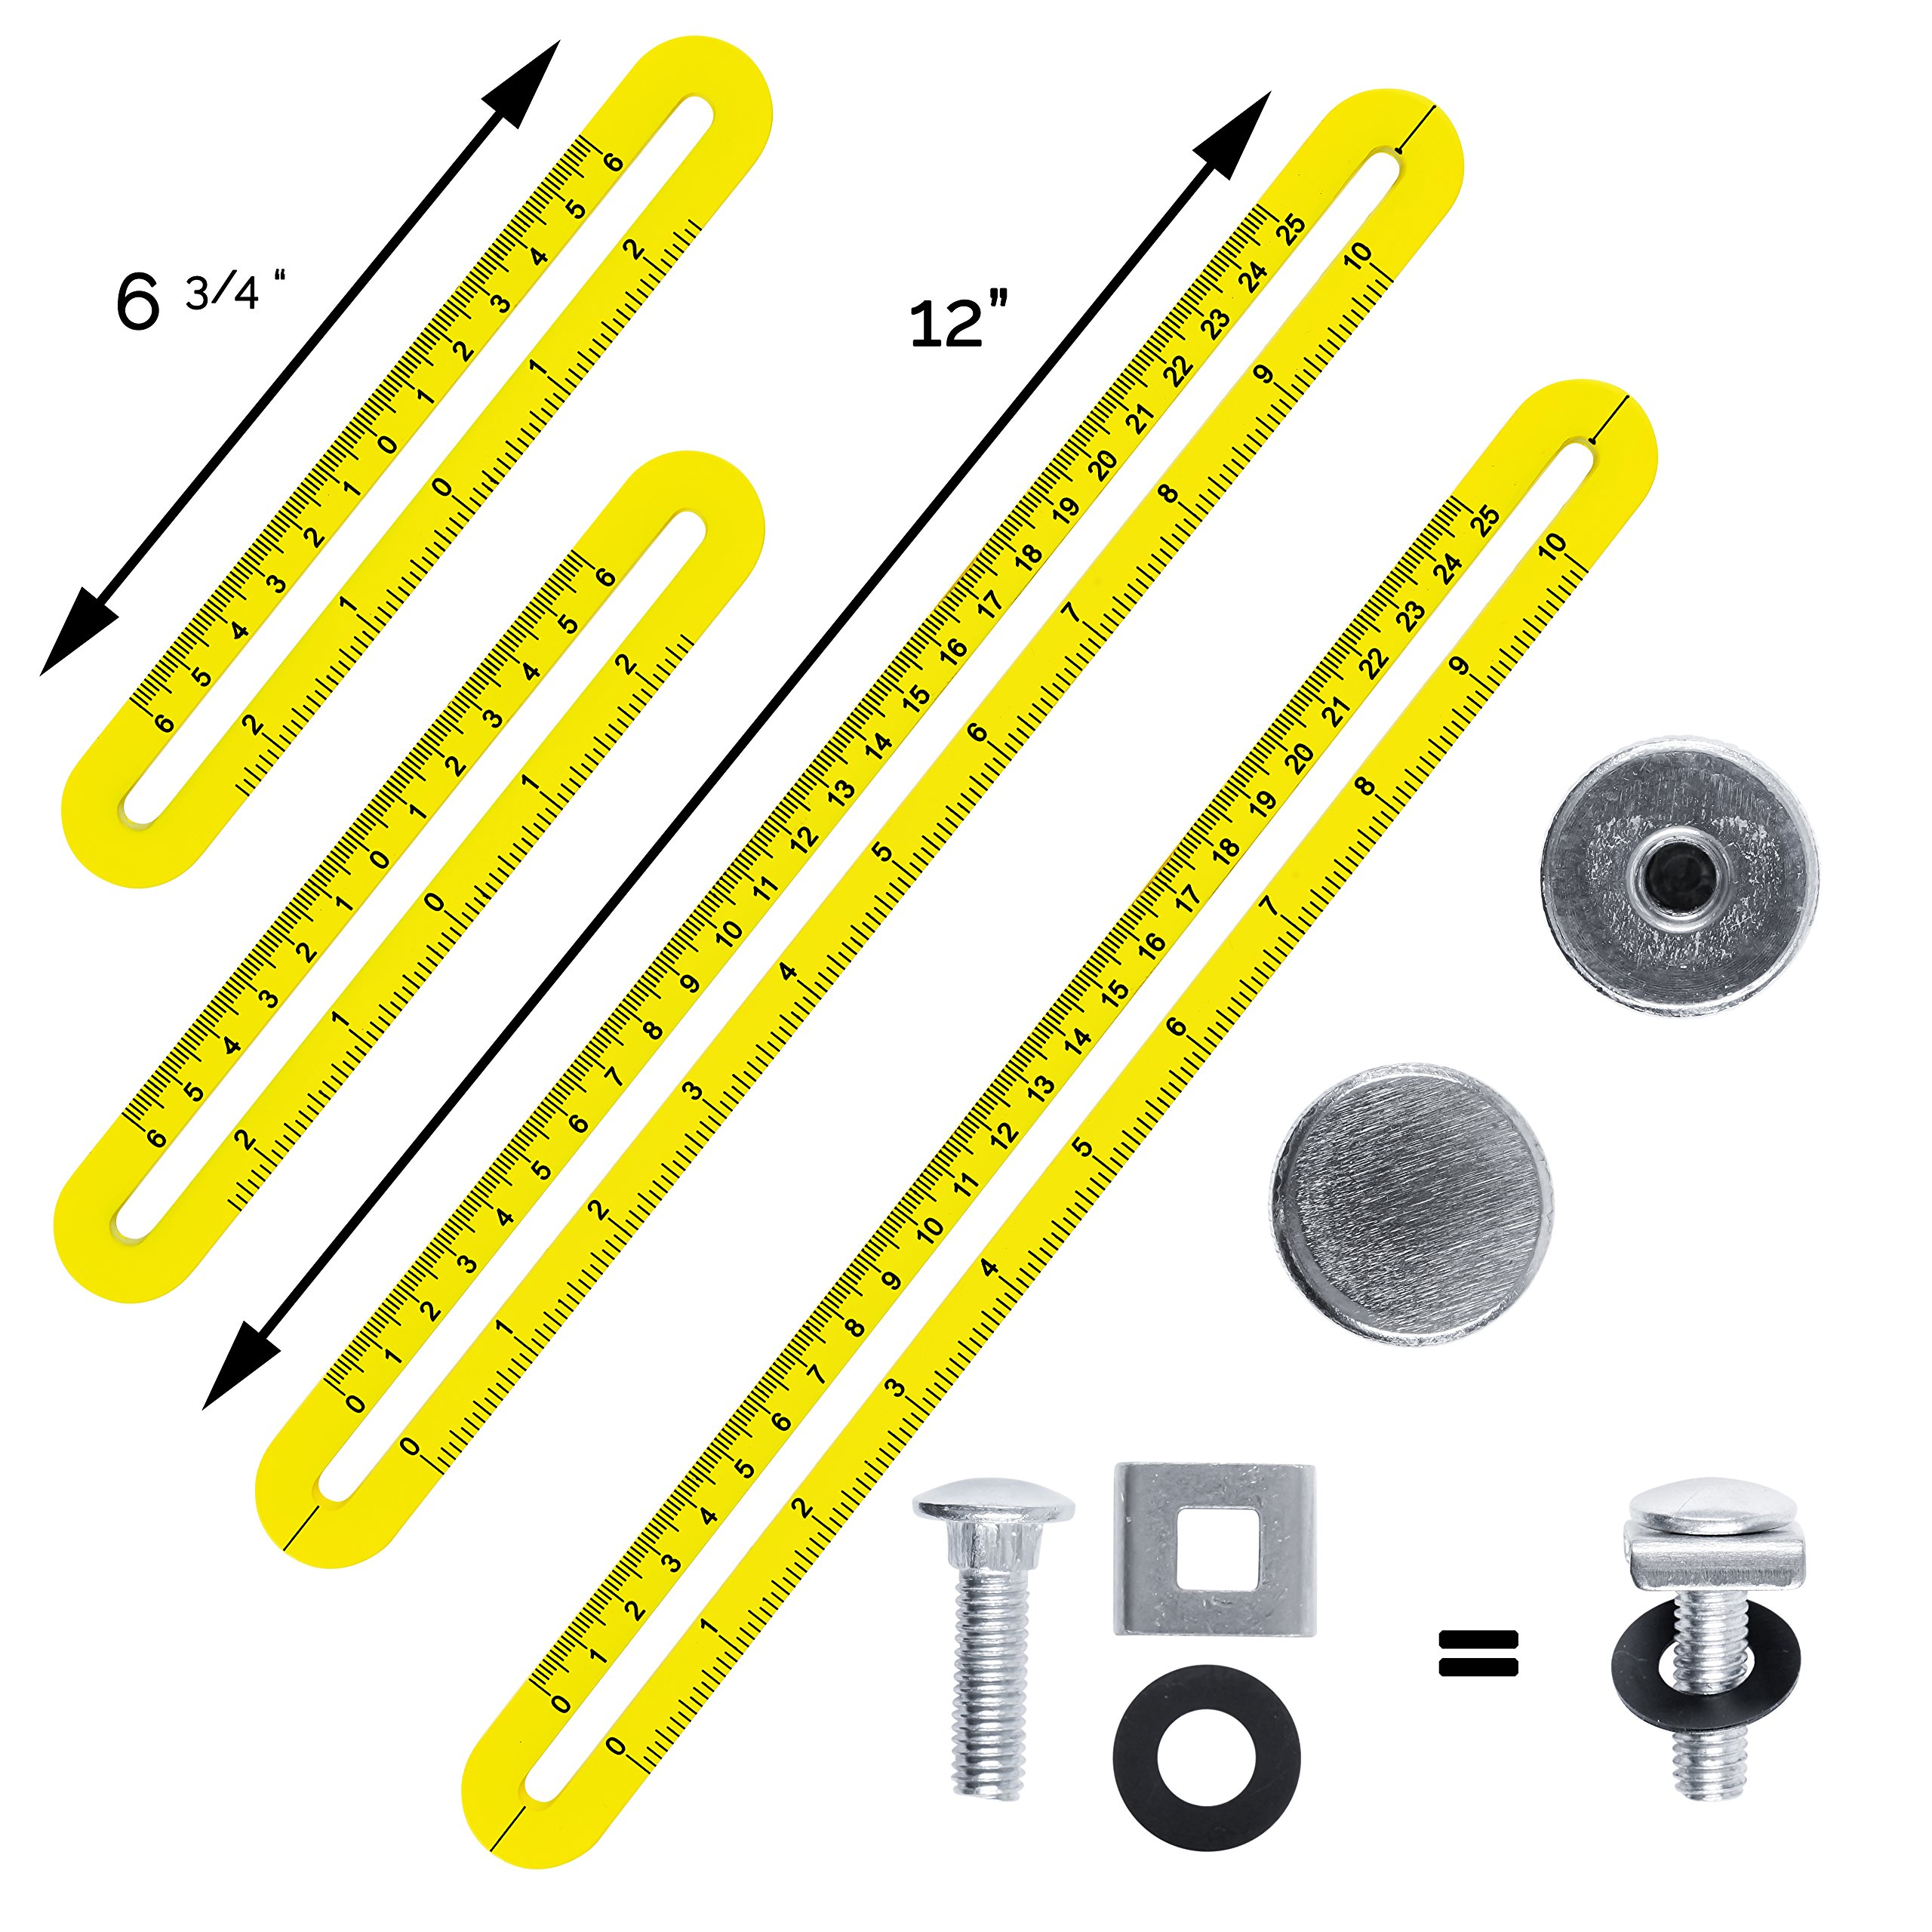 Universal Angularizer Ruler and Multi-Angle Measuring Tool in Yellow Metal - Template Tool Makes Great Gifts for Men Him Husband Dad Father DIY by Premium Rhino (Image #4)